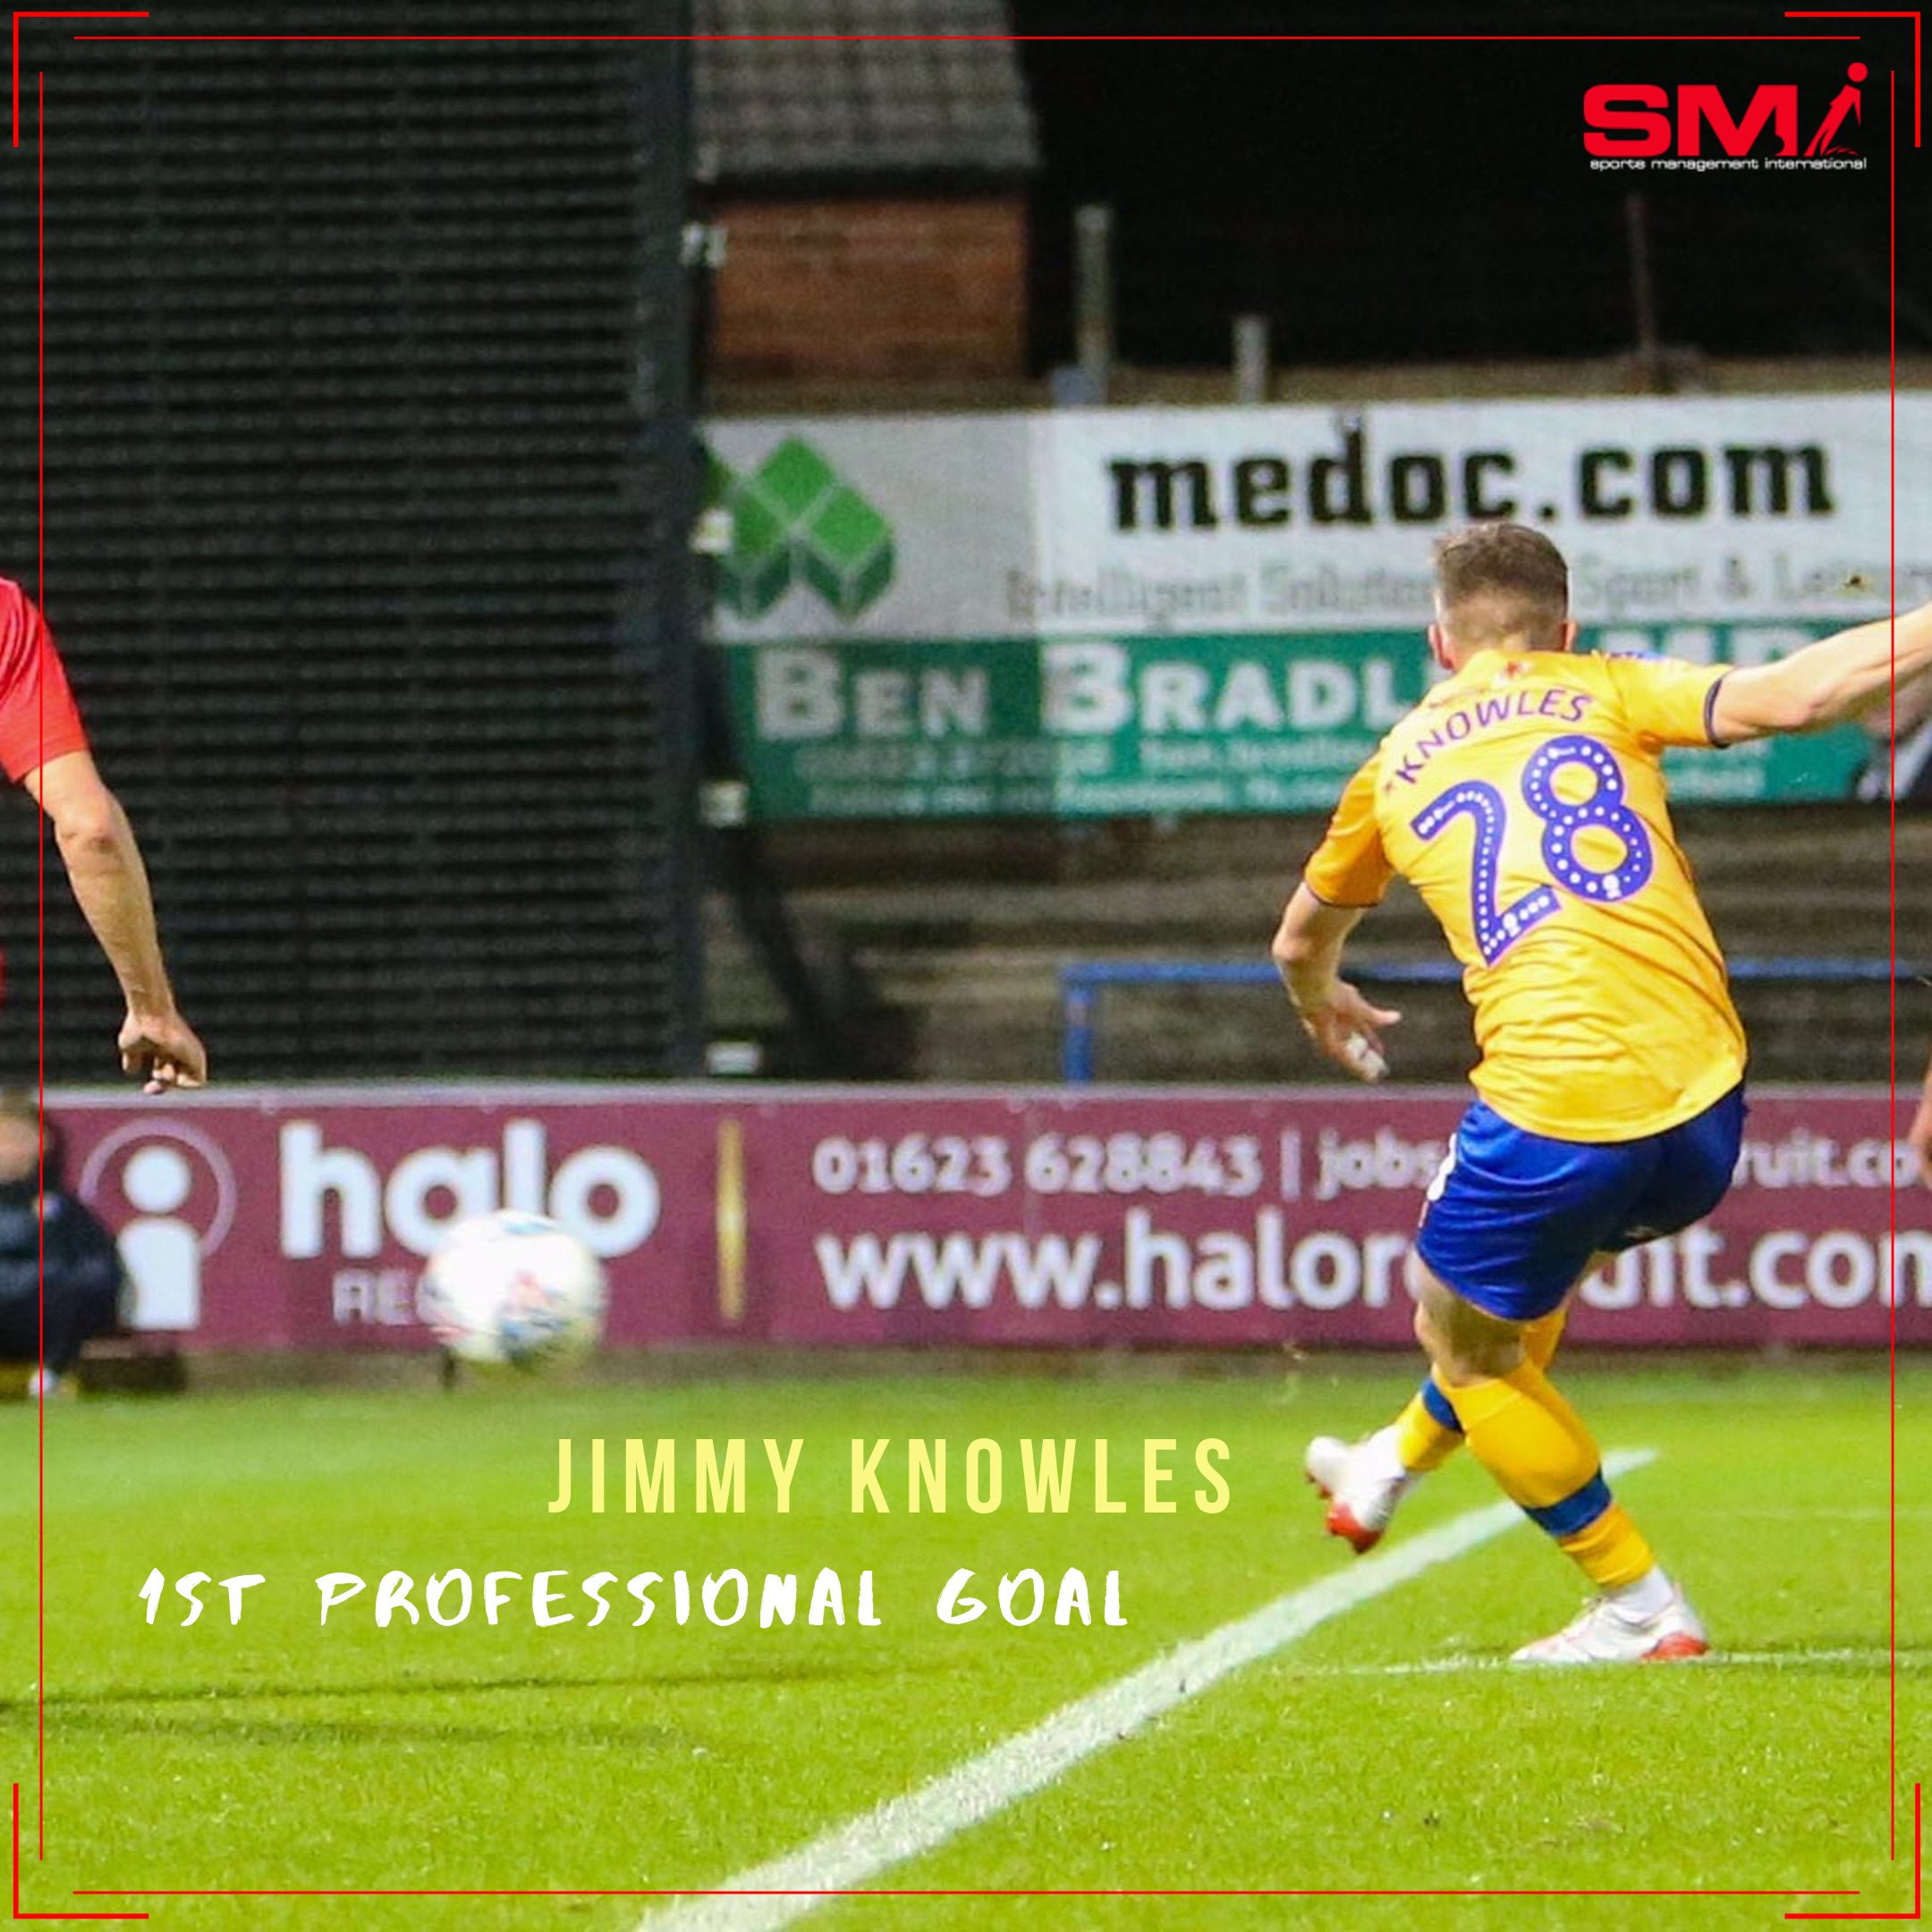 Jimmy Knowles 1st professional goal